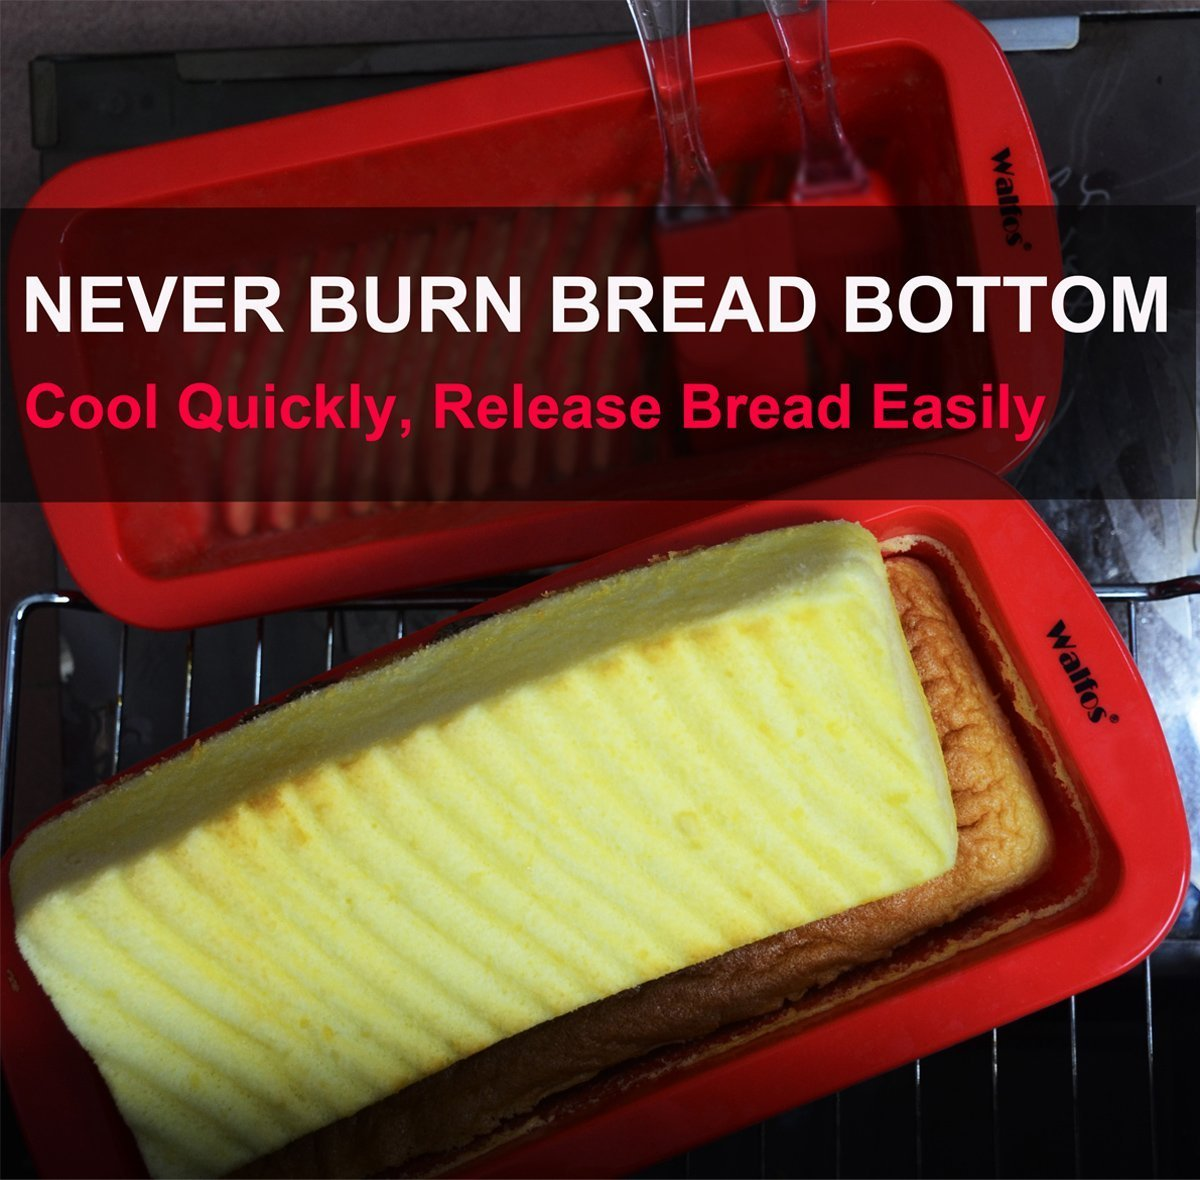 Meatloaf and quiche Breads BPA Free Loaf pan Walfos Nonstick Silicone Bread and Loaf Pan Set of 2 Without Chemical Coating,Just Pop Out W01 Easy release and baking mold for Homemade Cakes